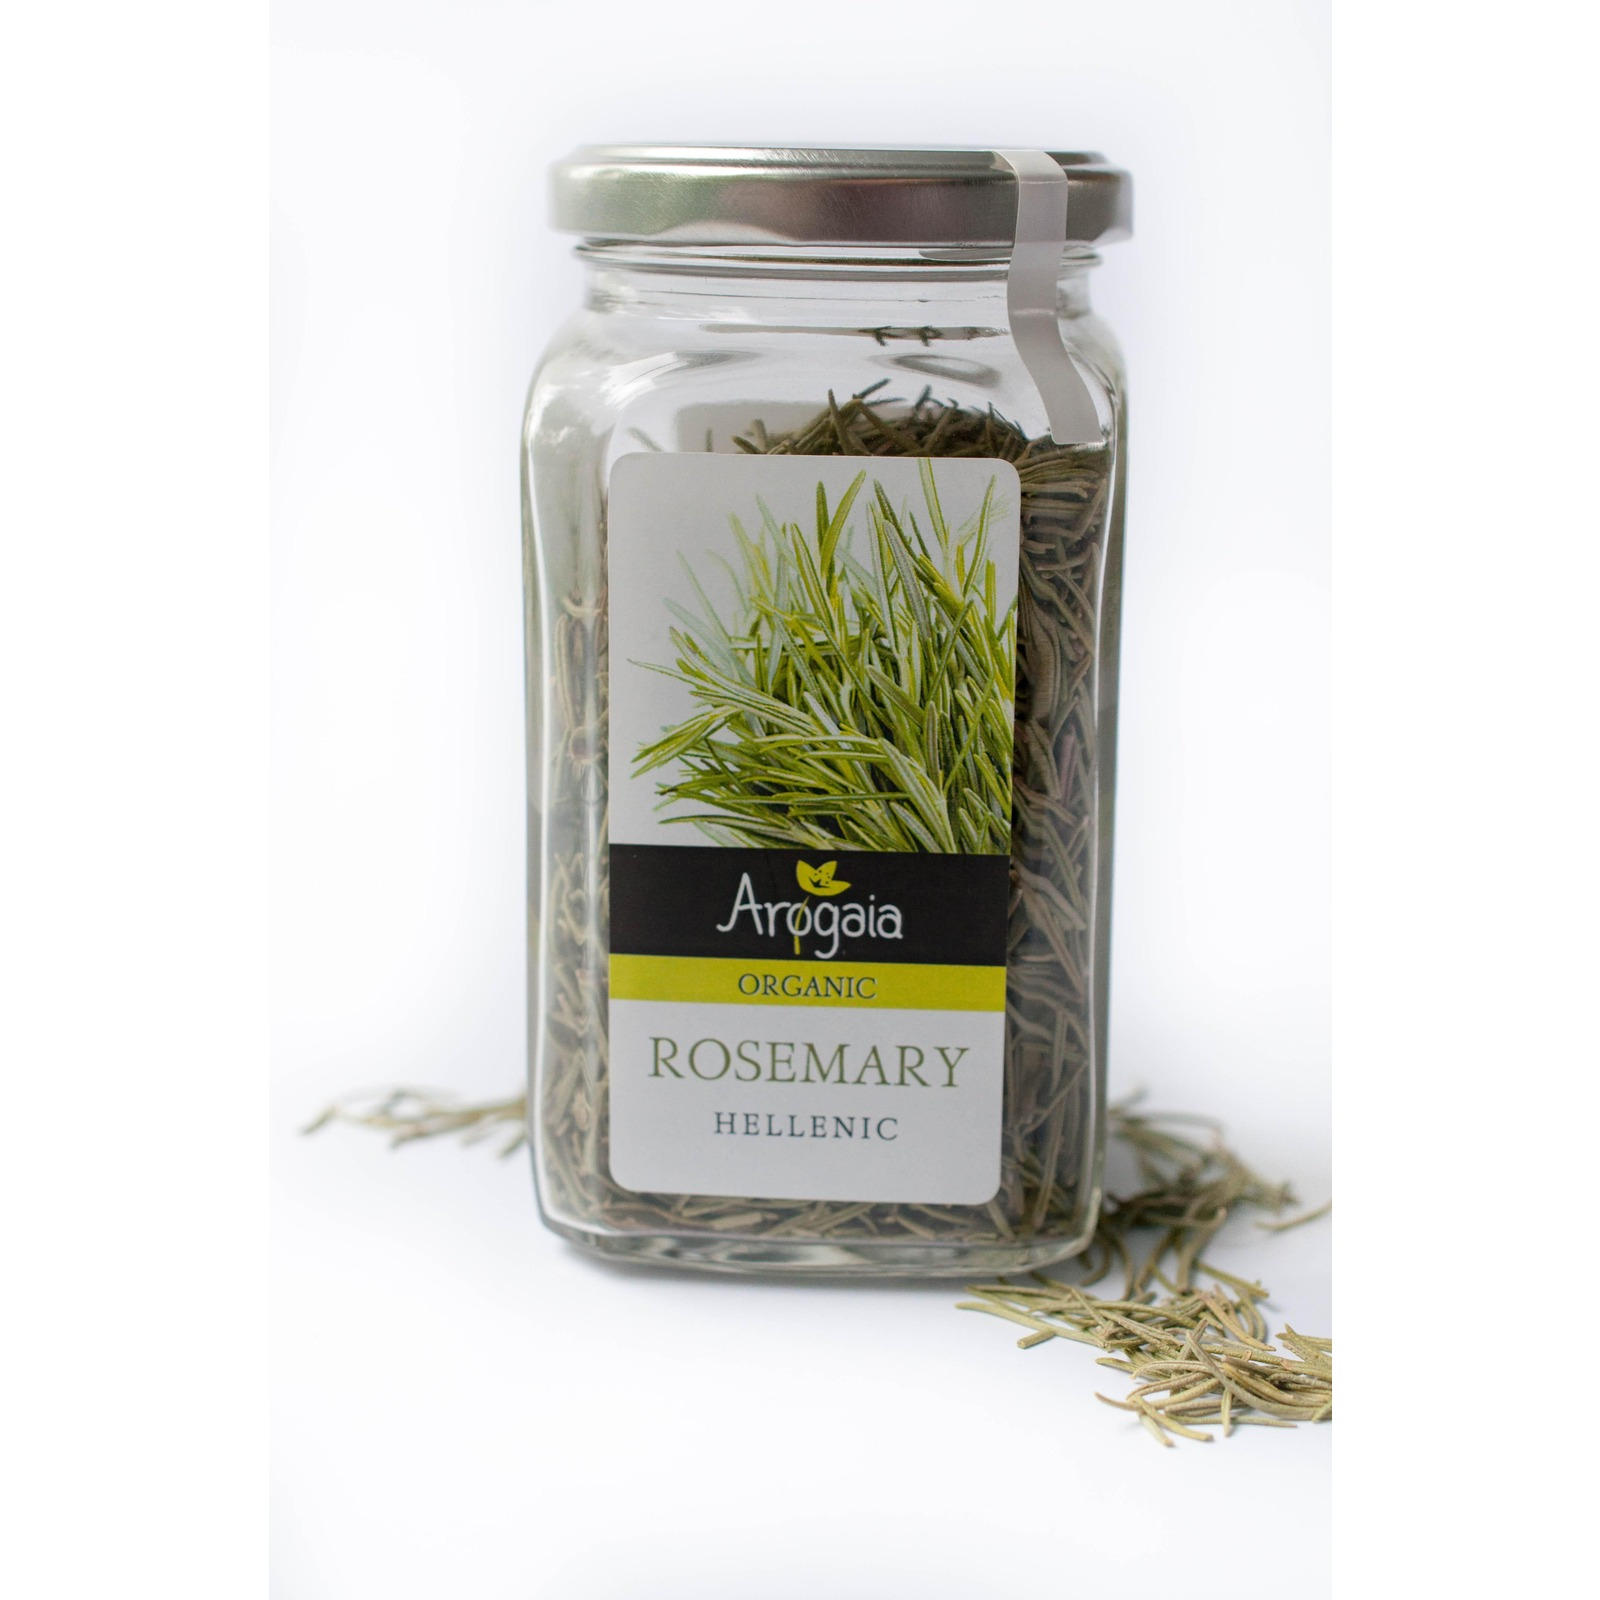 Arogaia Organic Greek Rosemary In A Glass Jar - By Agora Products